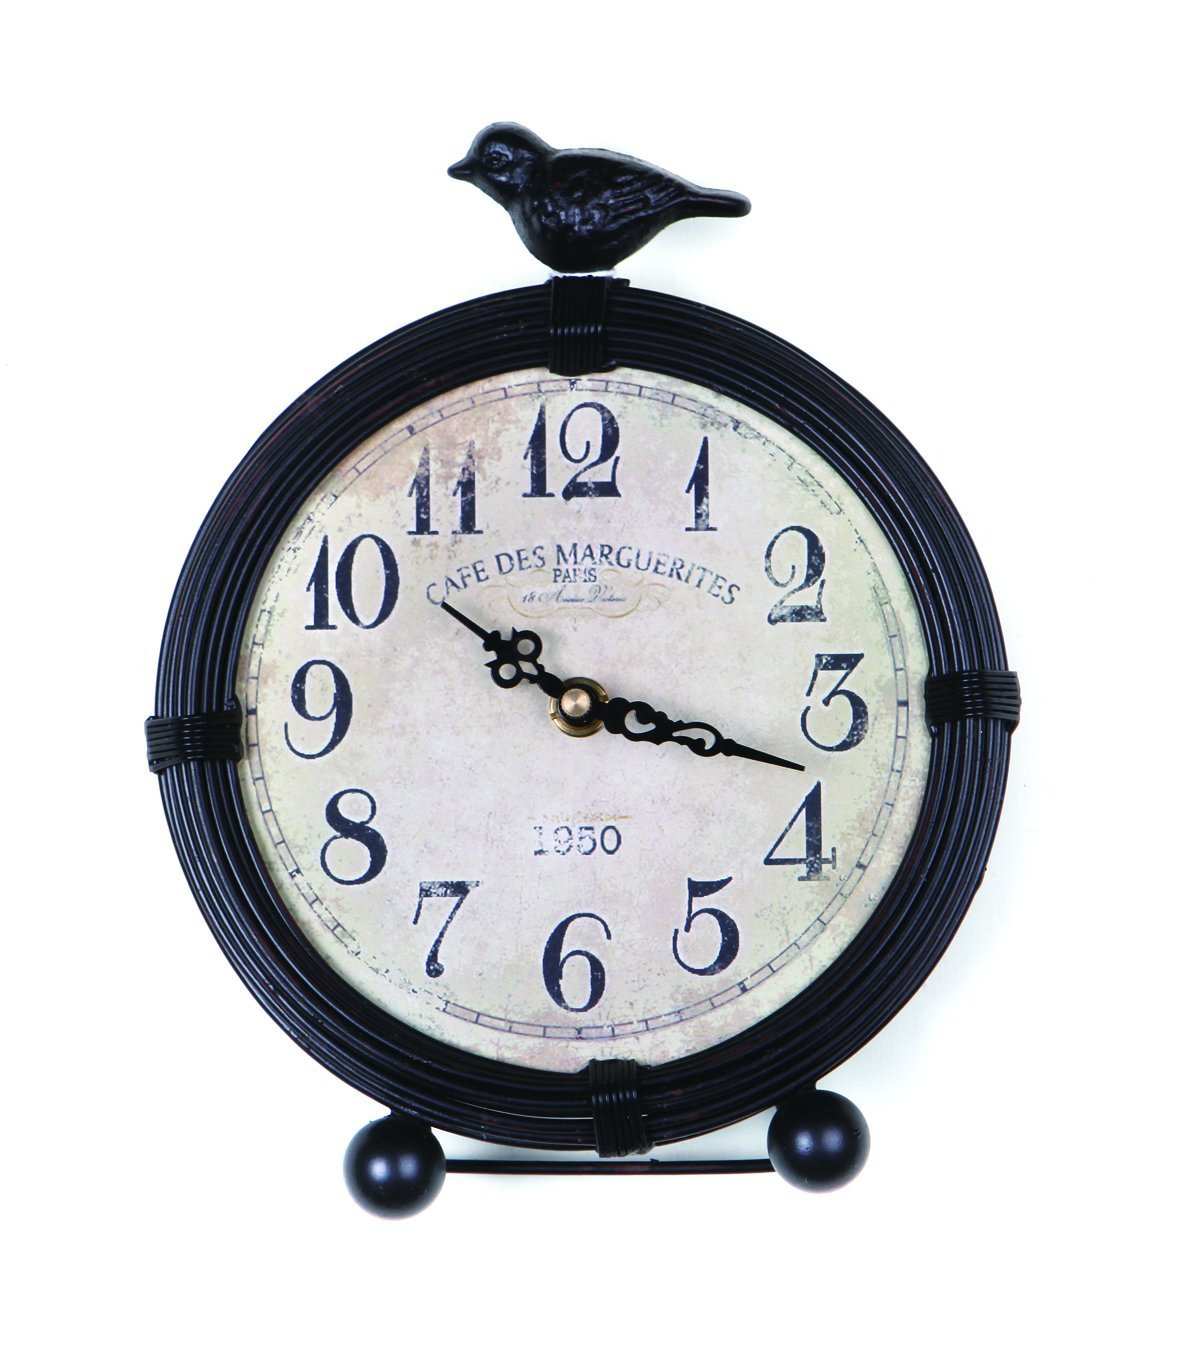 NIKKY HOME Vintage Cottage Metal Table Clock with Bird, 6.8 by 2 by 8.5 inches, Black